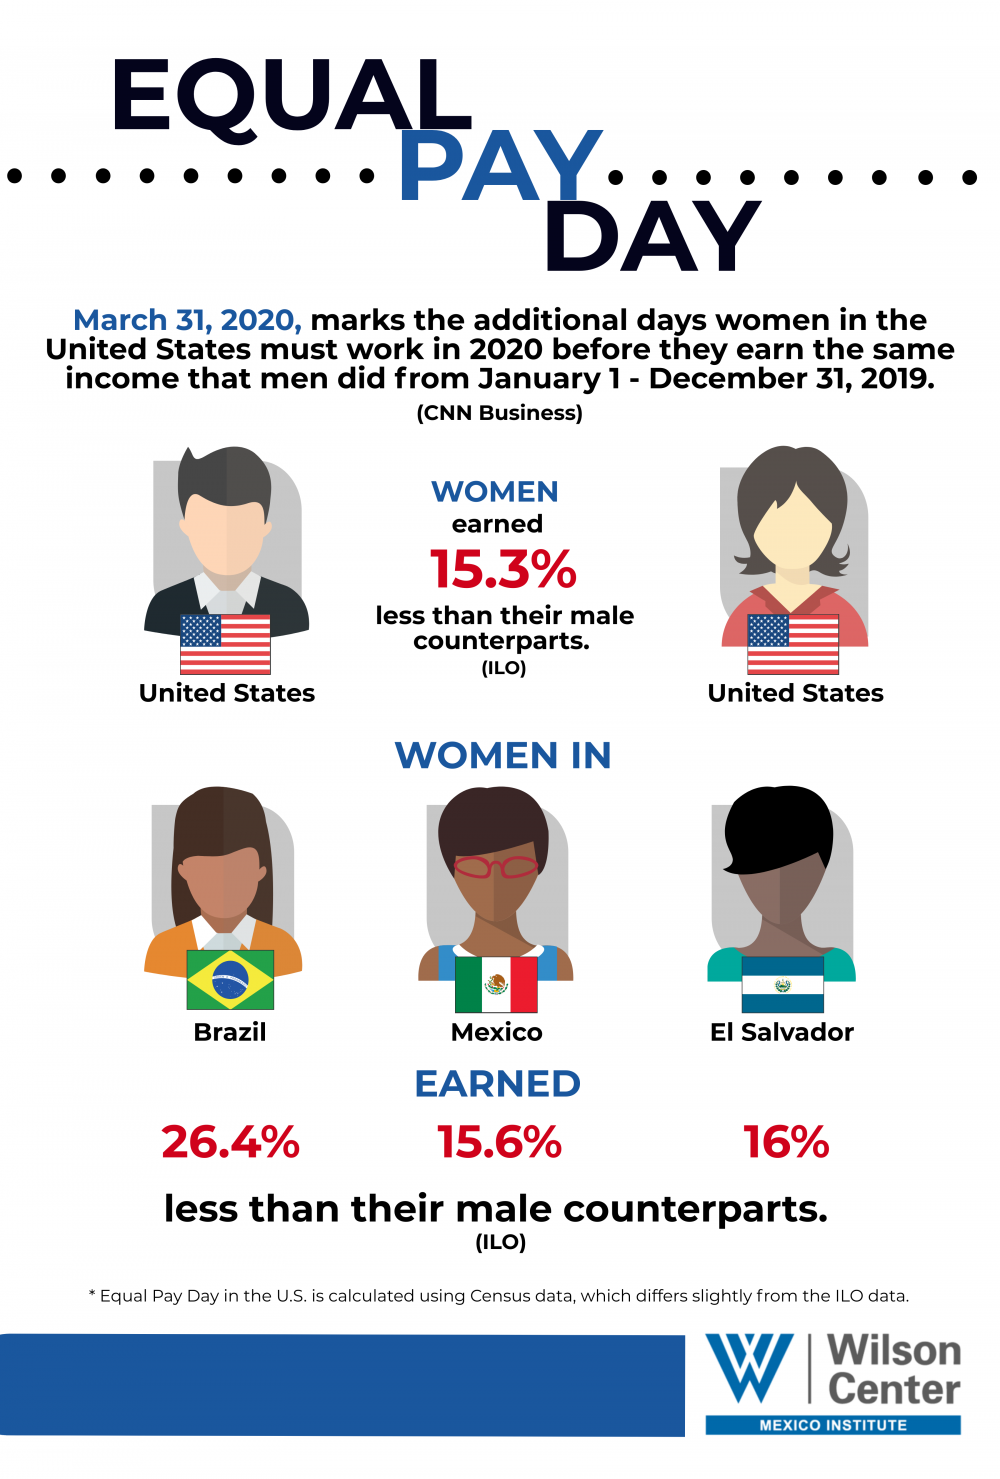 Image - Equal Pay Day Infographic